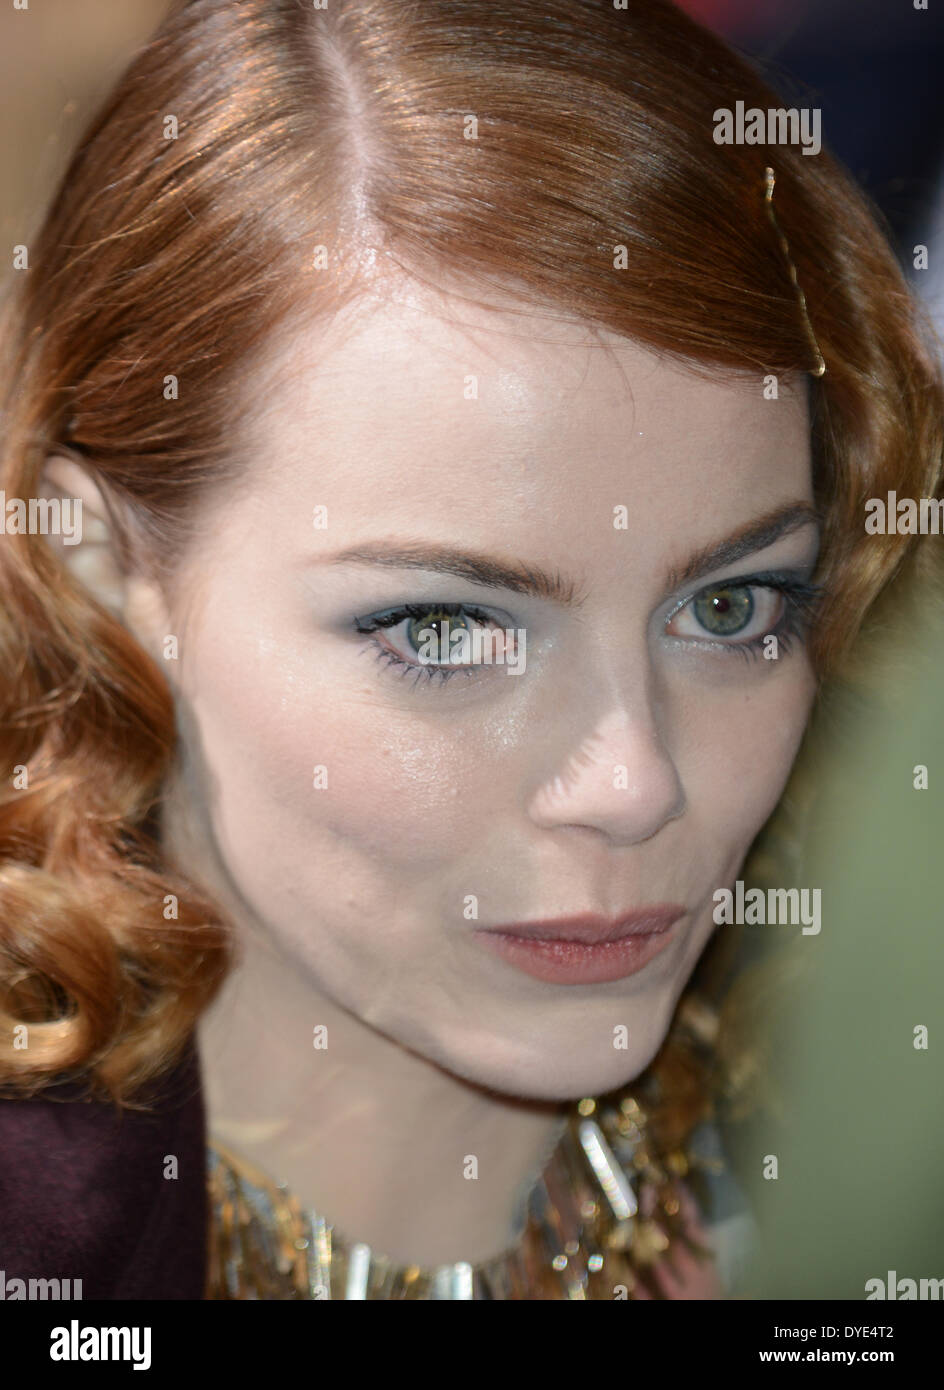 "BERLIN, ALLEMAGNE, 15 avril 2014. Emma Stone assiste à la ""The Amazing Spider-Man 2' Première mondiale dans le Sony Center sur la Potsdamer Platz, le 15 avril 2014 à Berlin, Allemagne. Credit : Janne Tervonen/Alamy Live News Photo Stock"